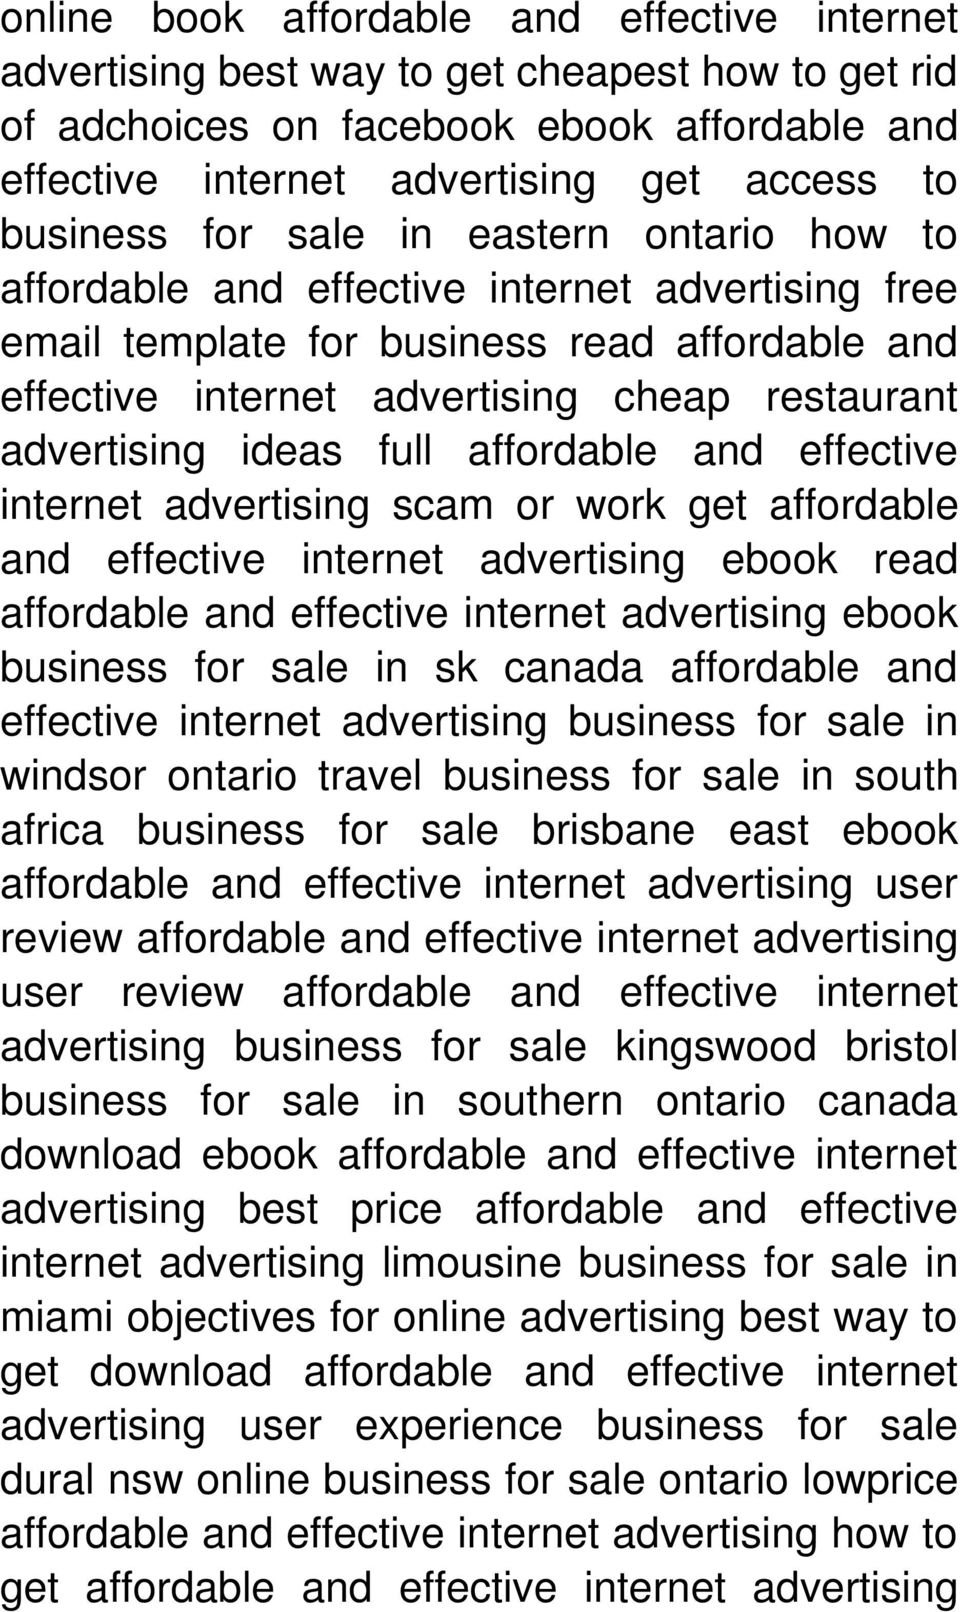 advertising scam or work get affordable and effective internet advertising ebook read ebook business for sale in sk canada affordable and effective internet advertising business for sale in windsor